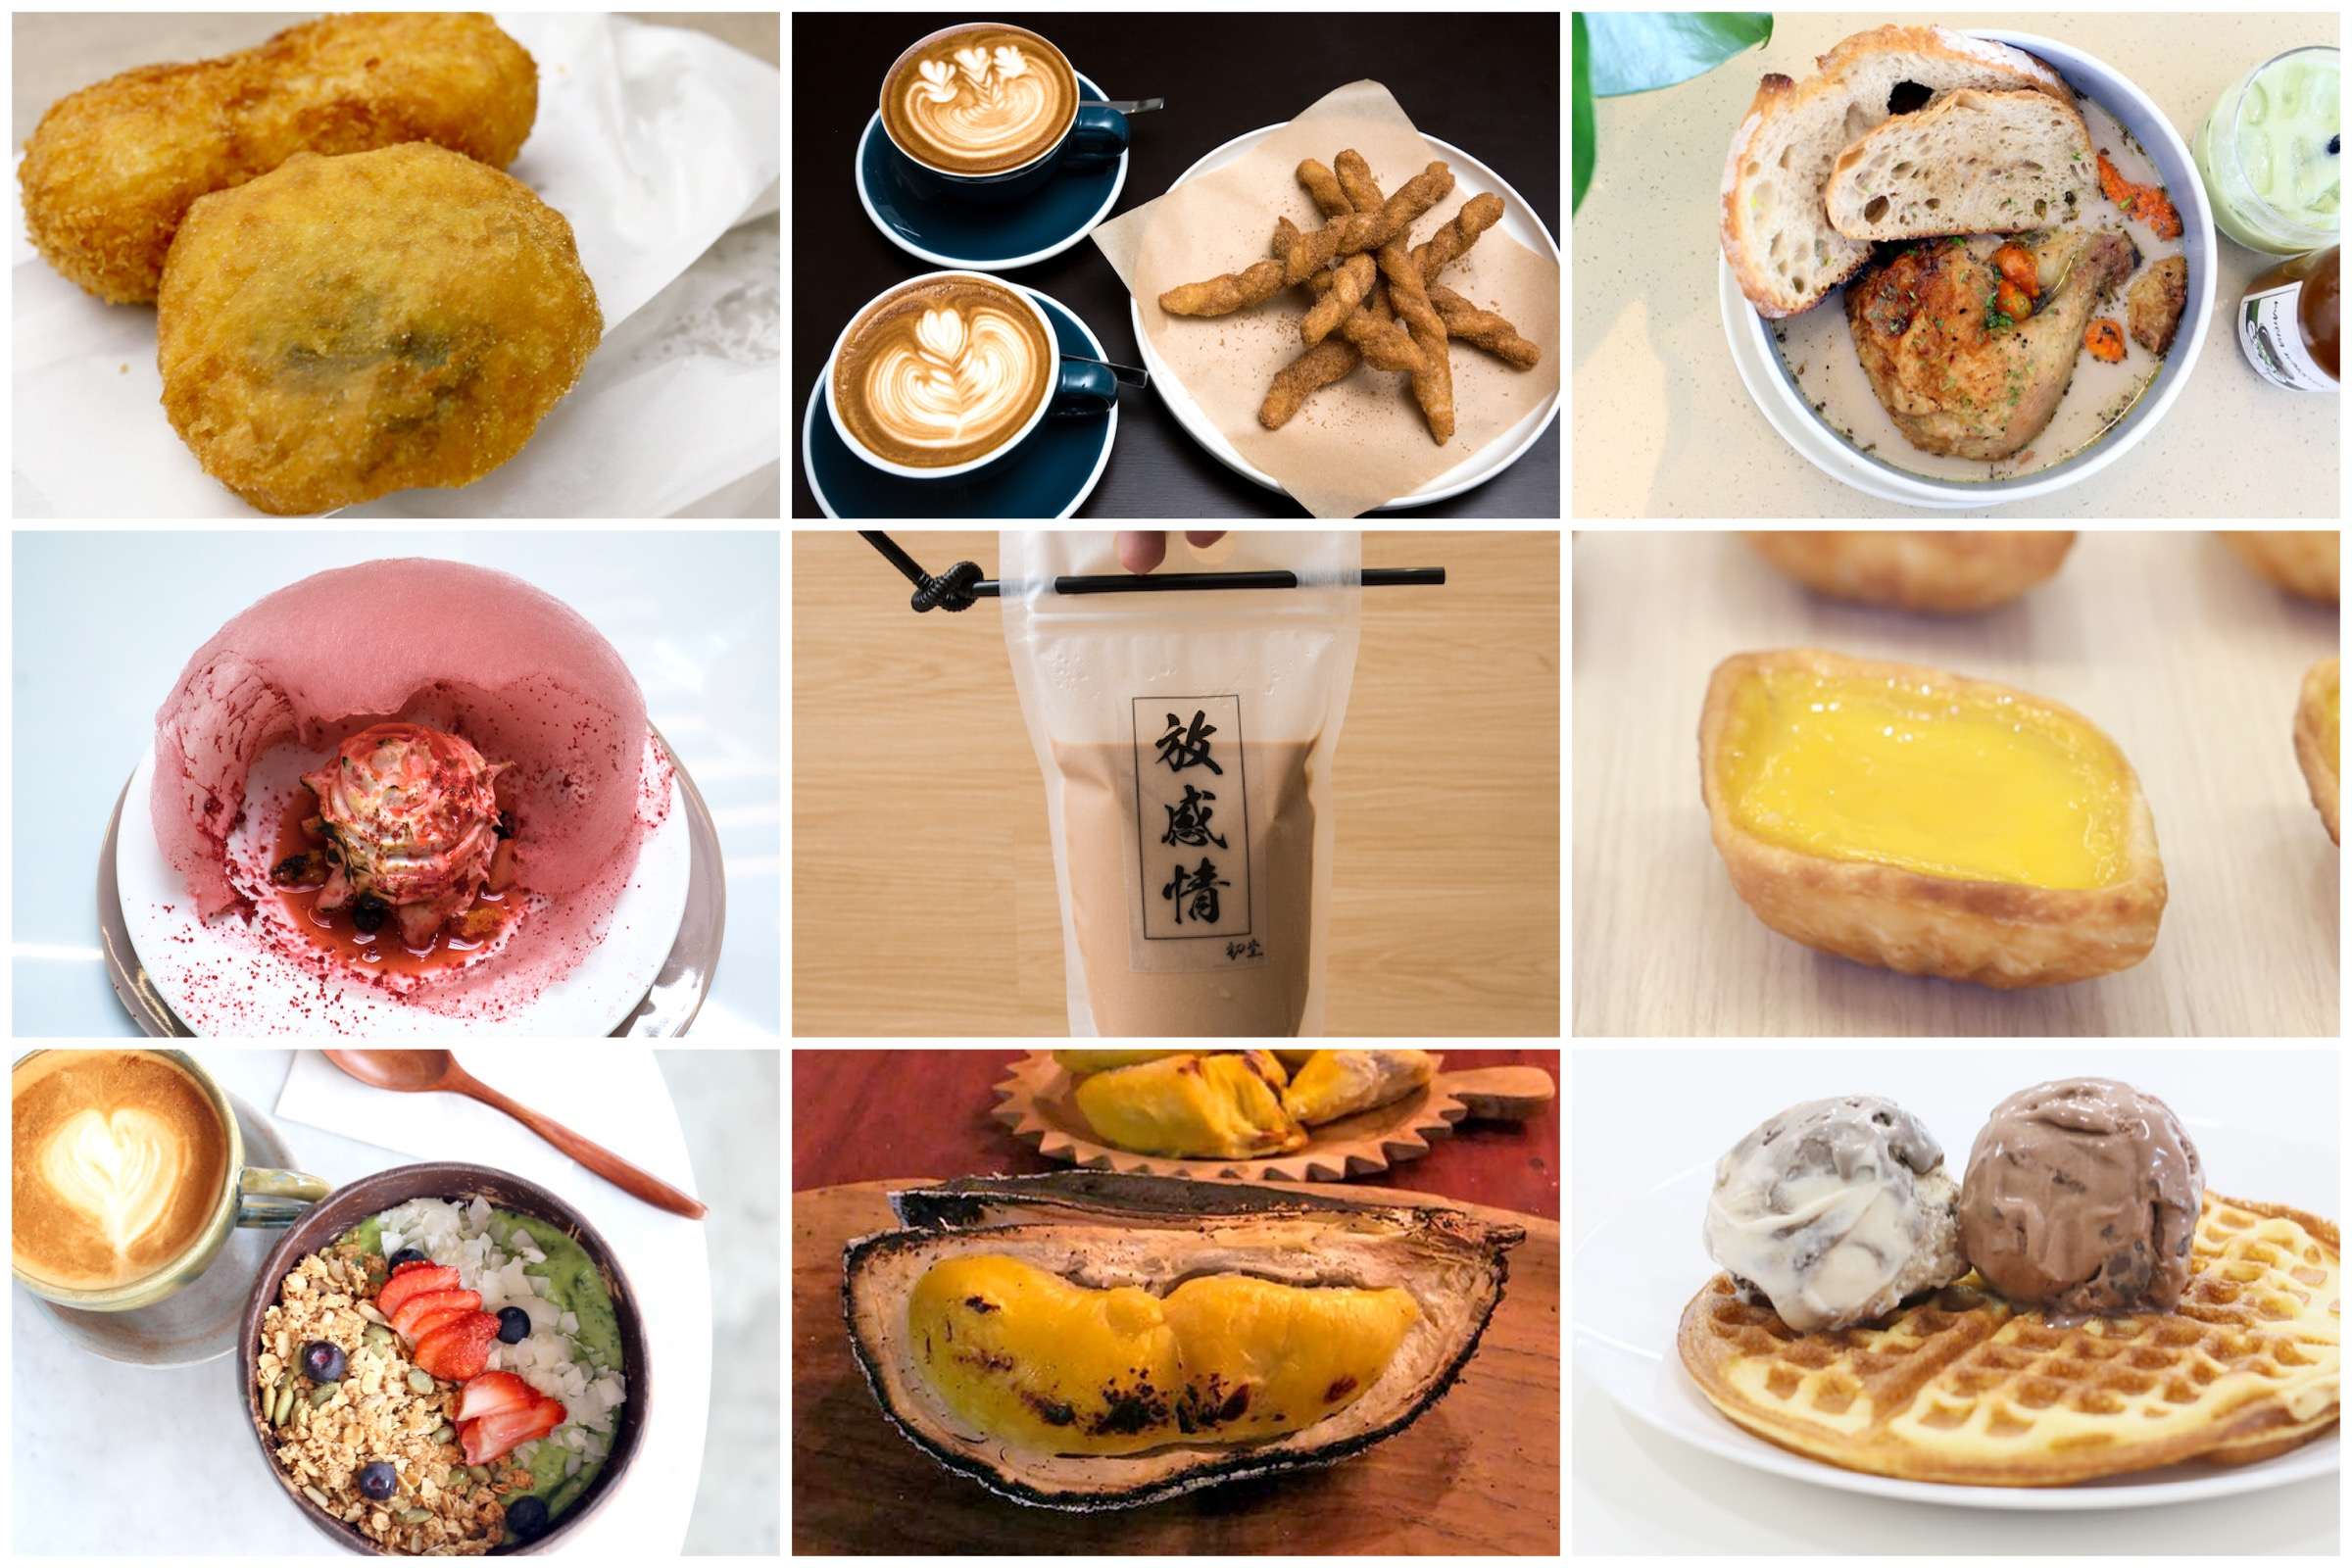 "10 NEW Cafés In Singapore May 2018 - Famous Korean Kwabaeggi ""Donuts"", Baked Durians, And Tong Heng Egg Tarts"